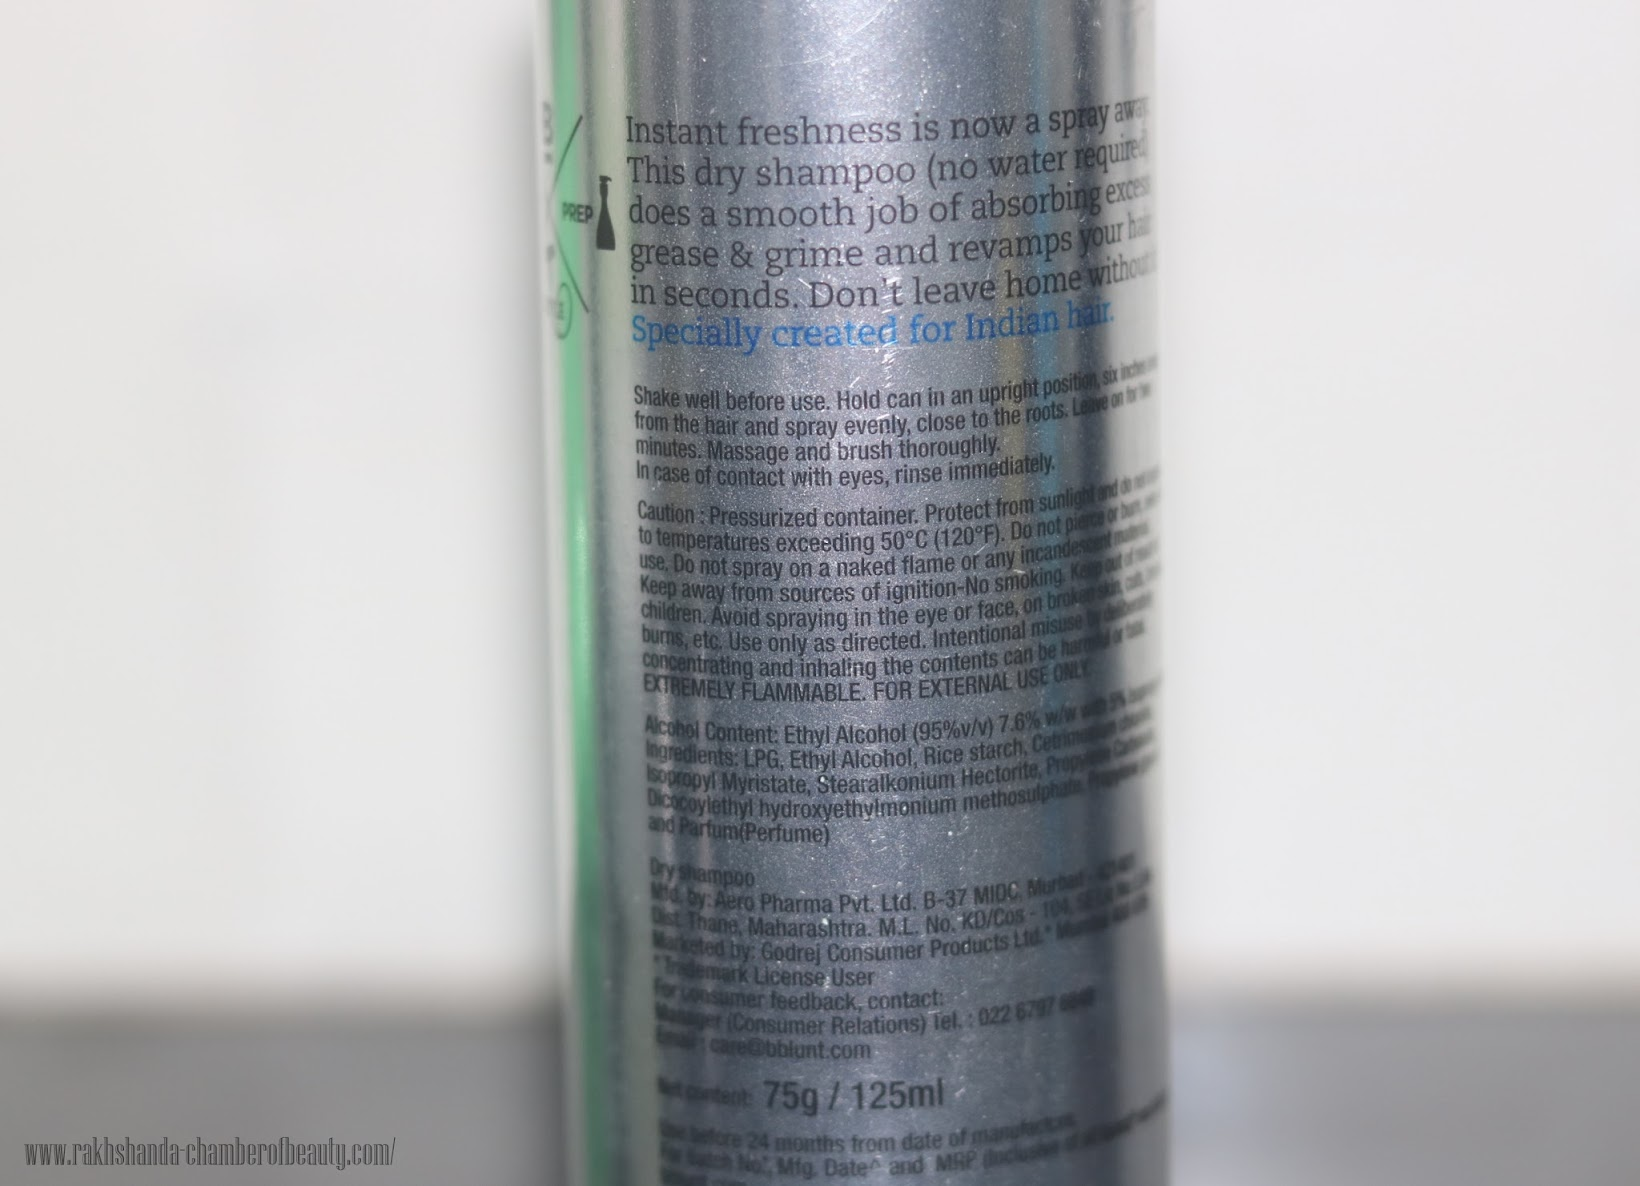 BBlunt Back to Life Dry Shampoo for Instant freshness- Review & price in India, best dry shampoo in India, Indian beauty Blogger, Chamber of Beauty